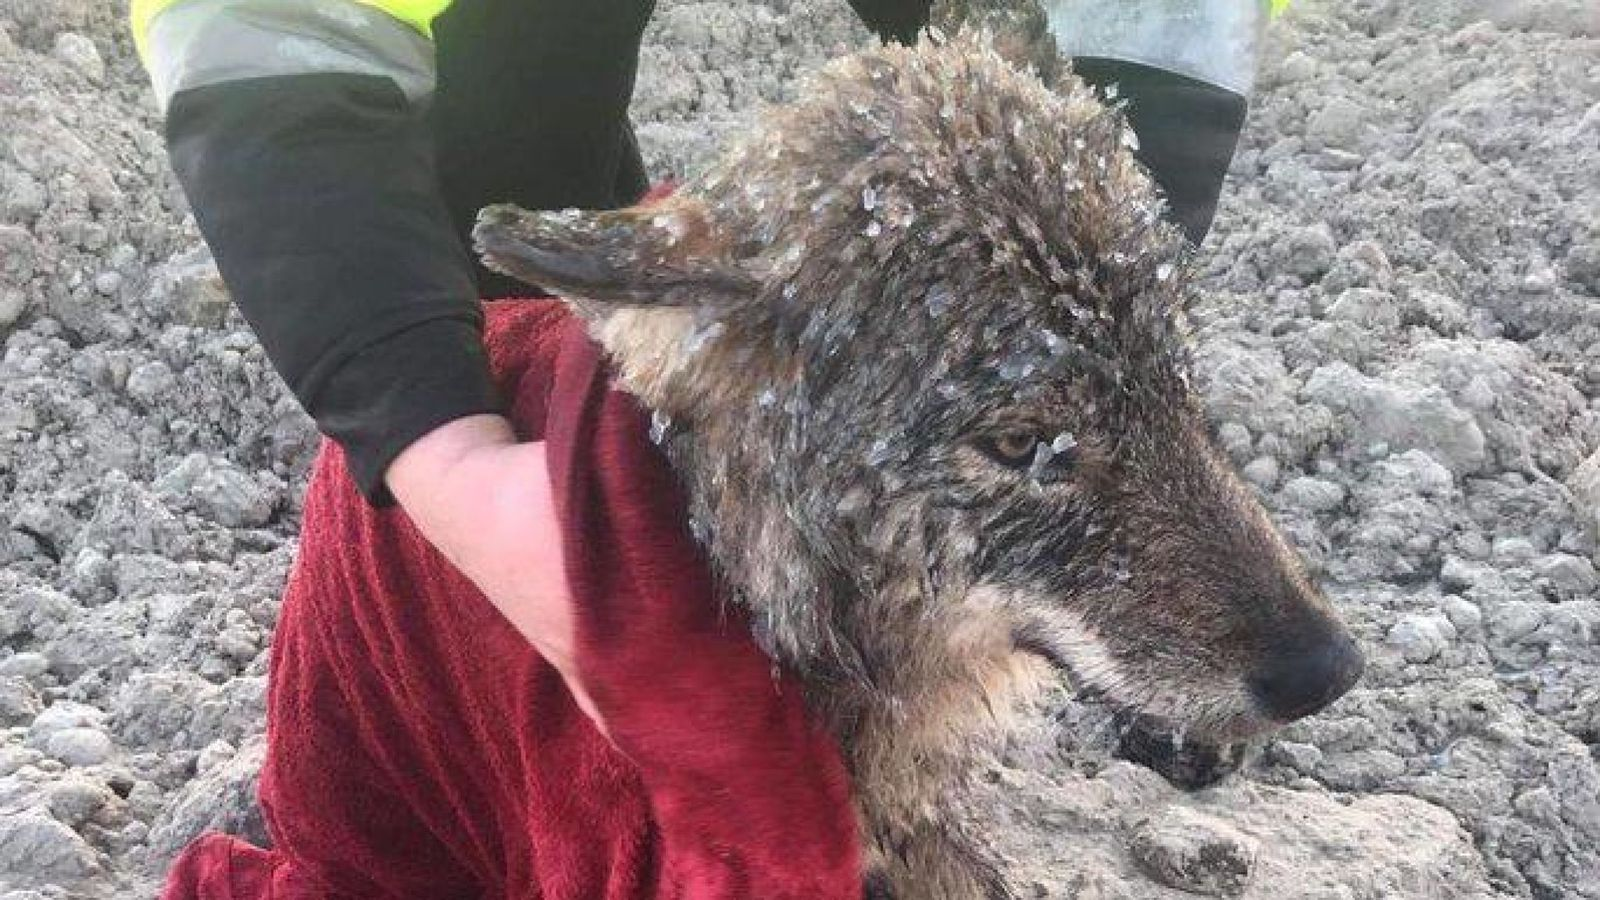 Wolf saved after rescuers in Estonia initially thought it was a dog